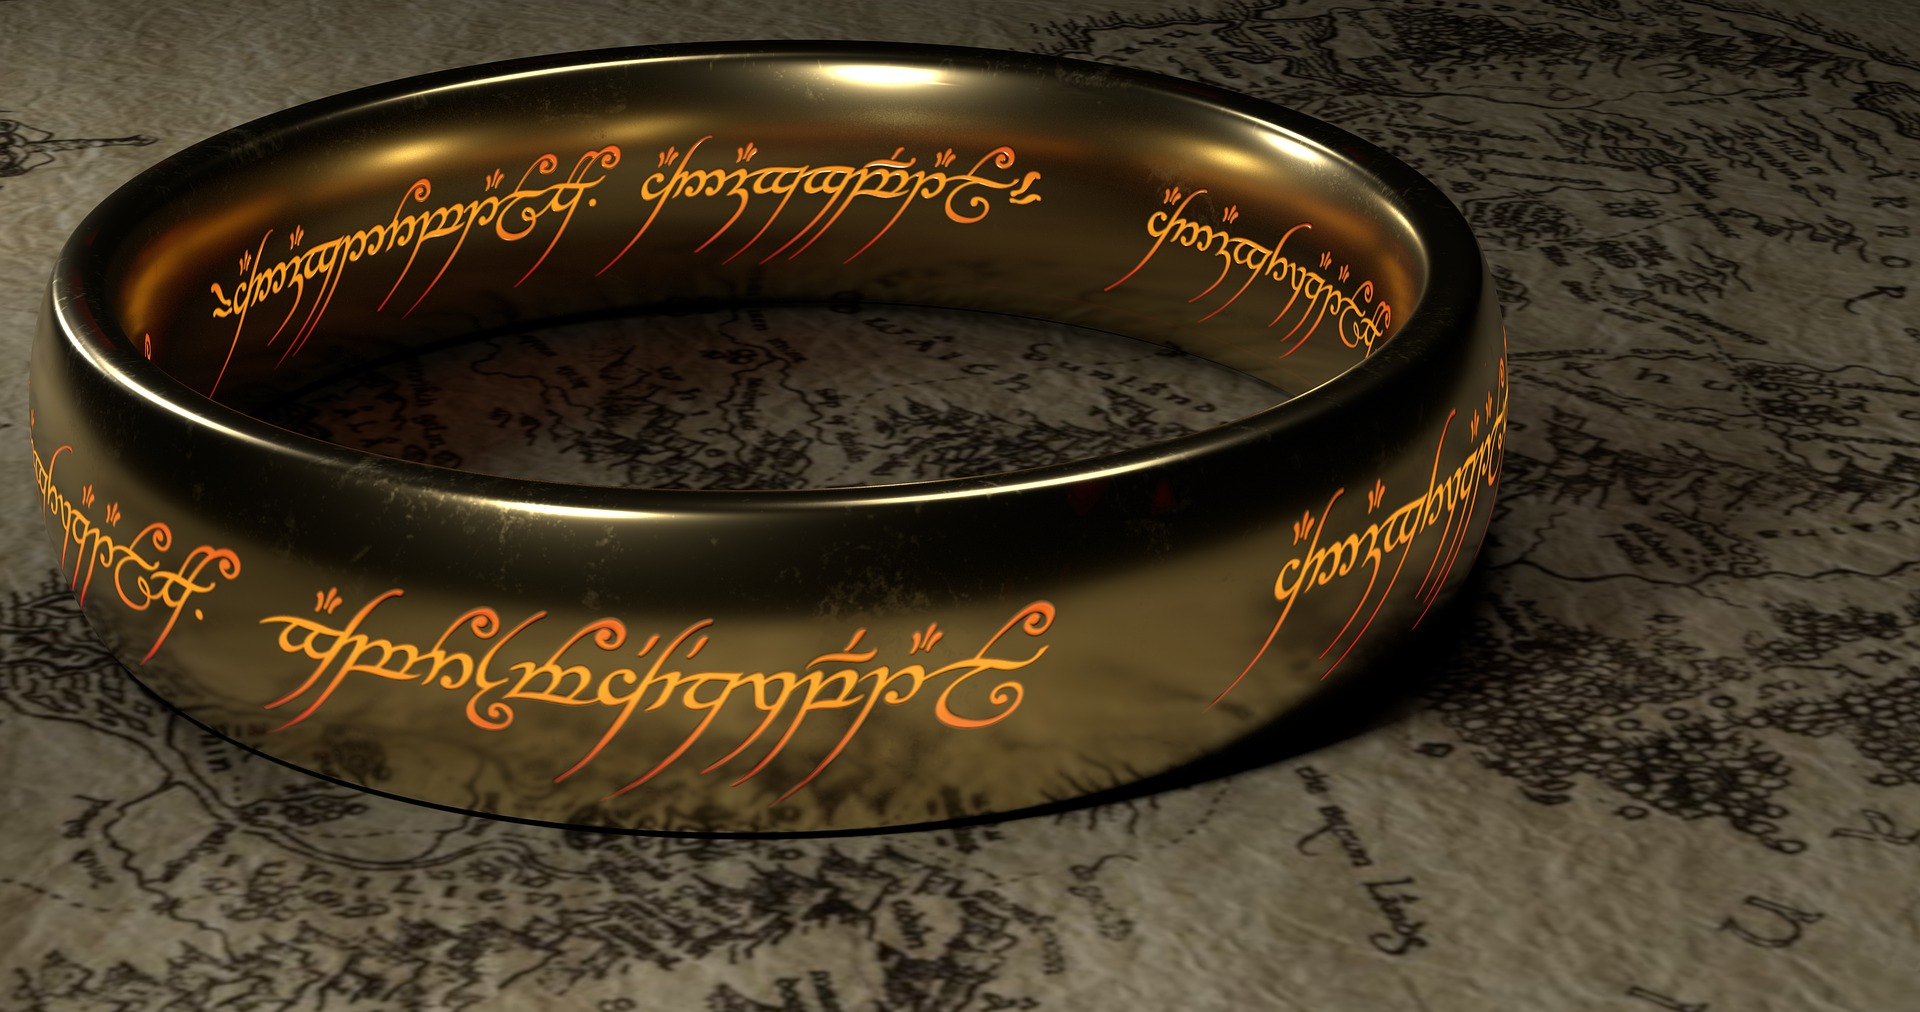 You are currently viewing Non di solo fantasy visse Tolkien